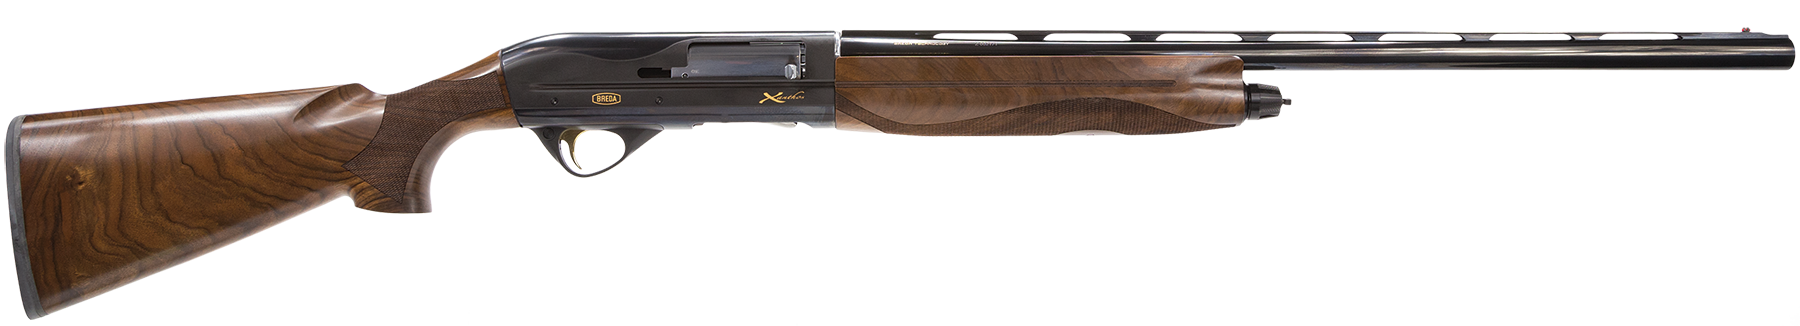 Breda/Dickinson BRE24 Xanthos Semi-Automatic 12 Gauge 26